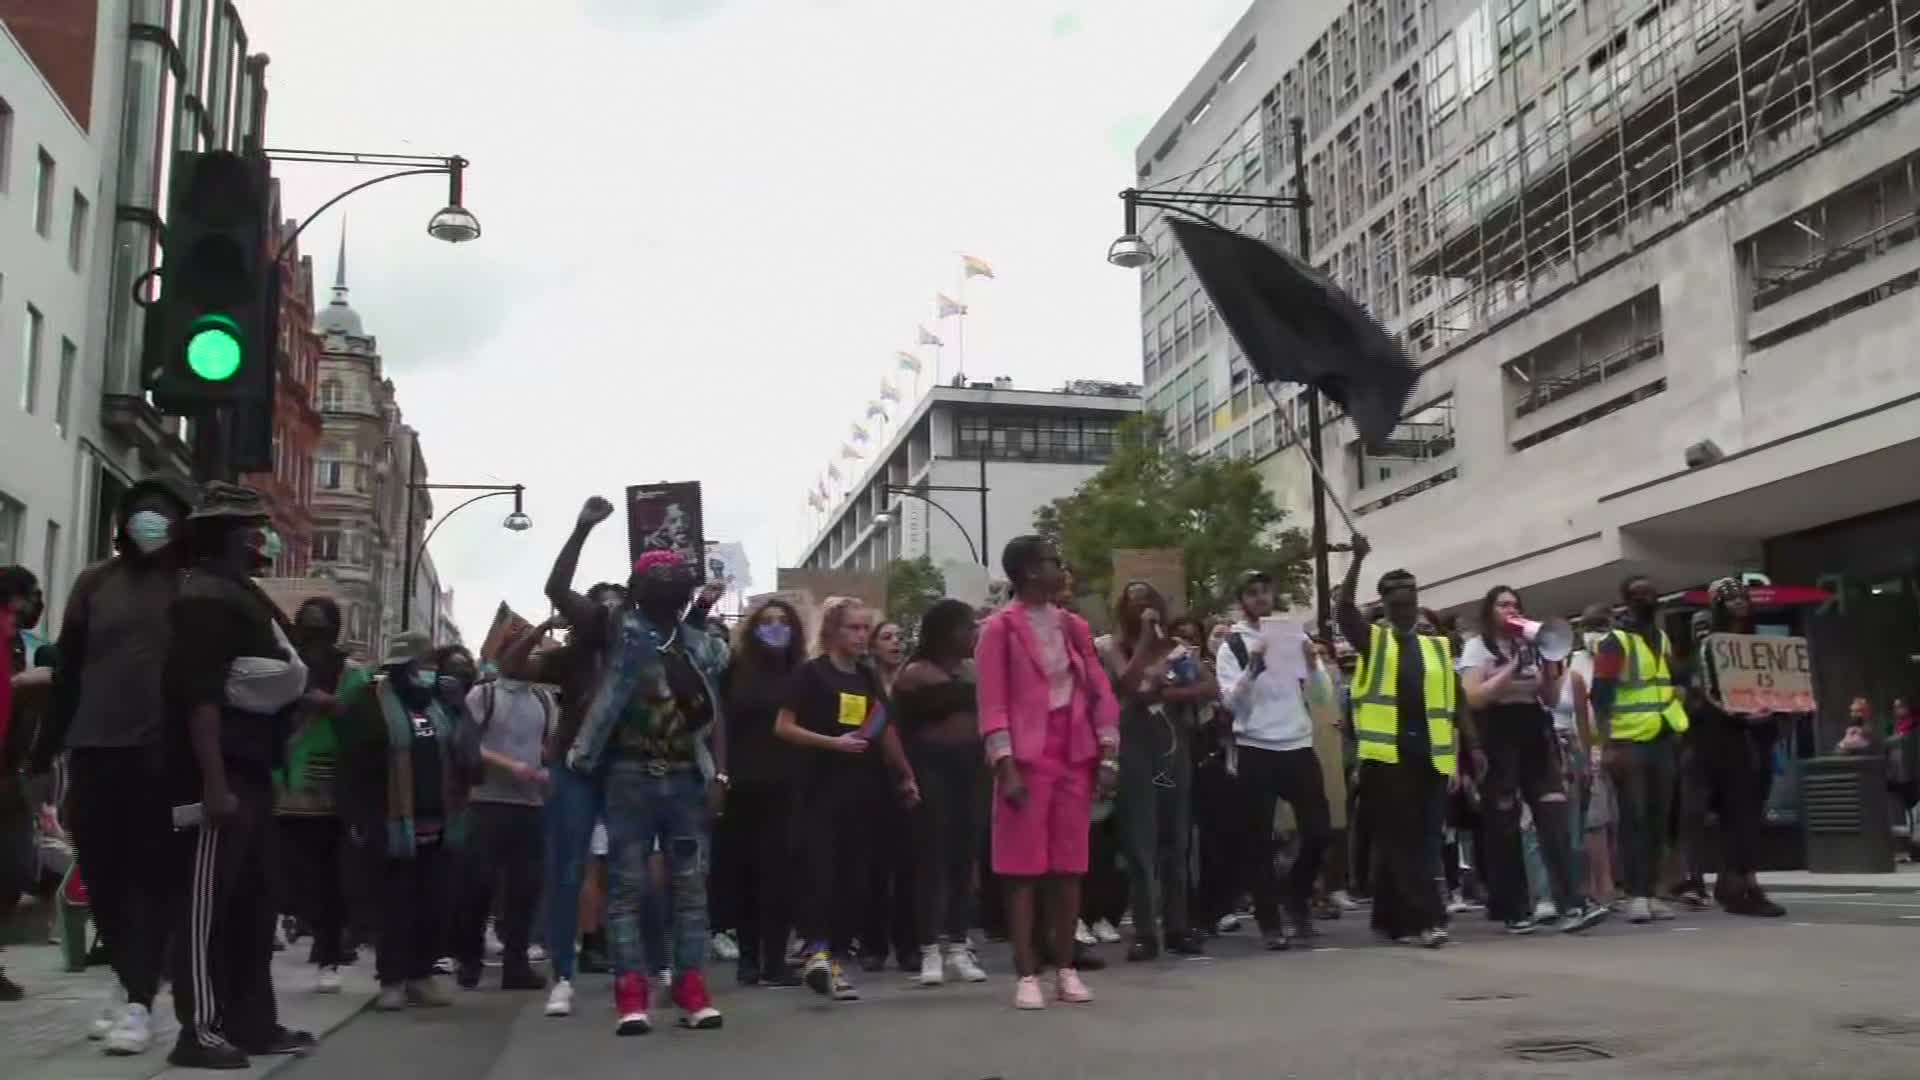 Protesters in London on June 21, 2020.